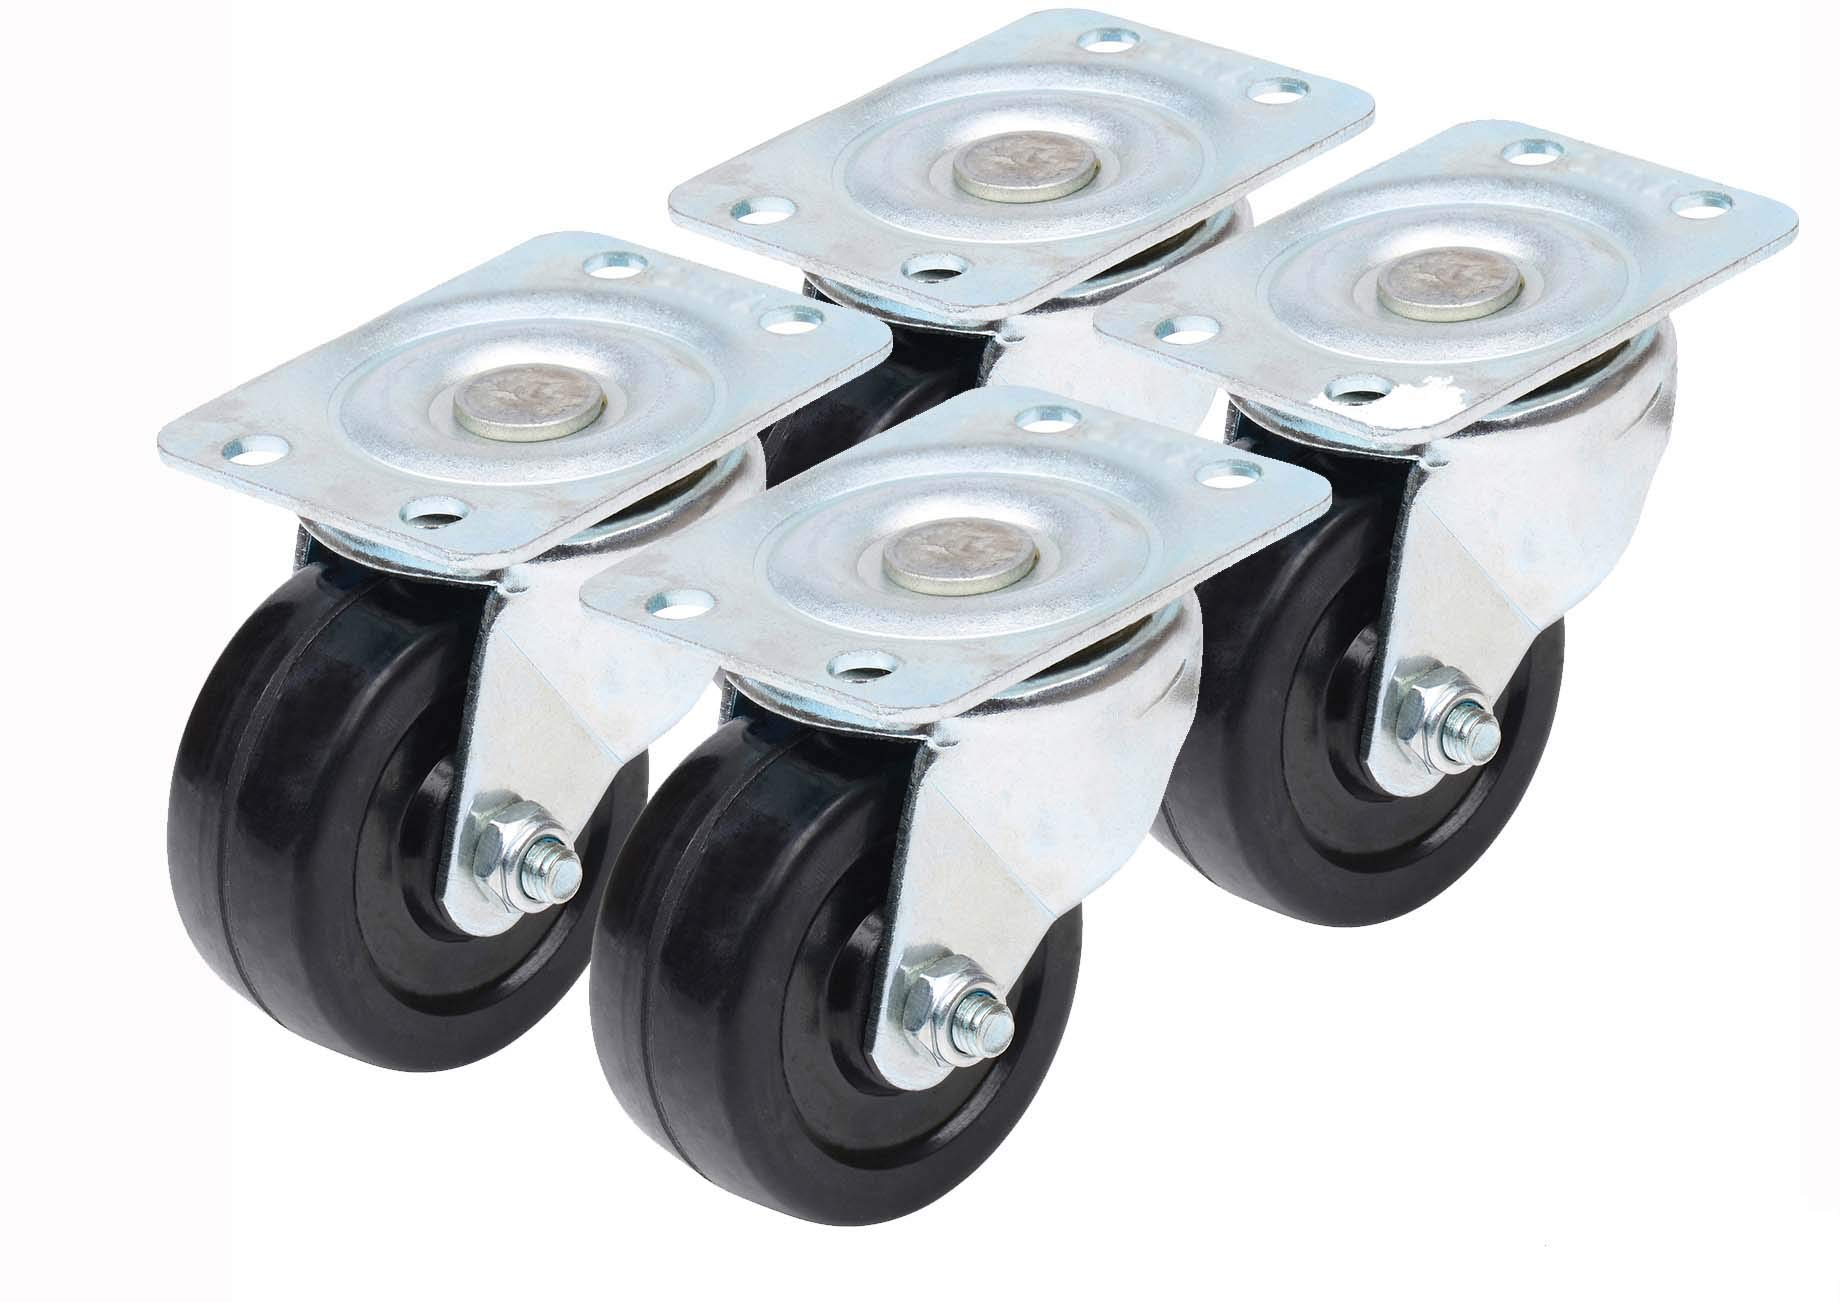 Caster Classics 2-inch Low Profile HD Rubber Wheel Plate Casters - 4-Pack by Caster Classics